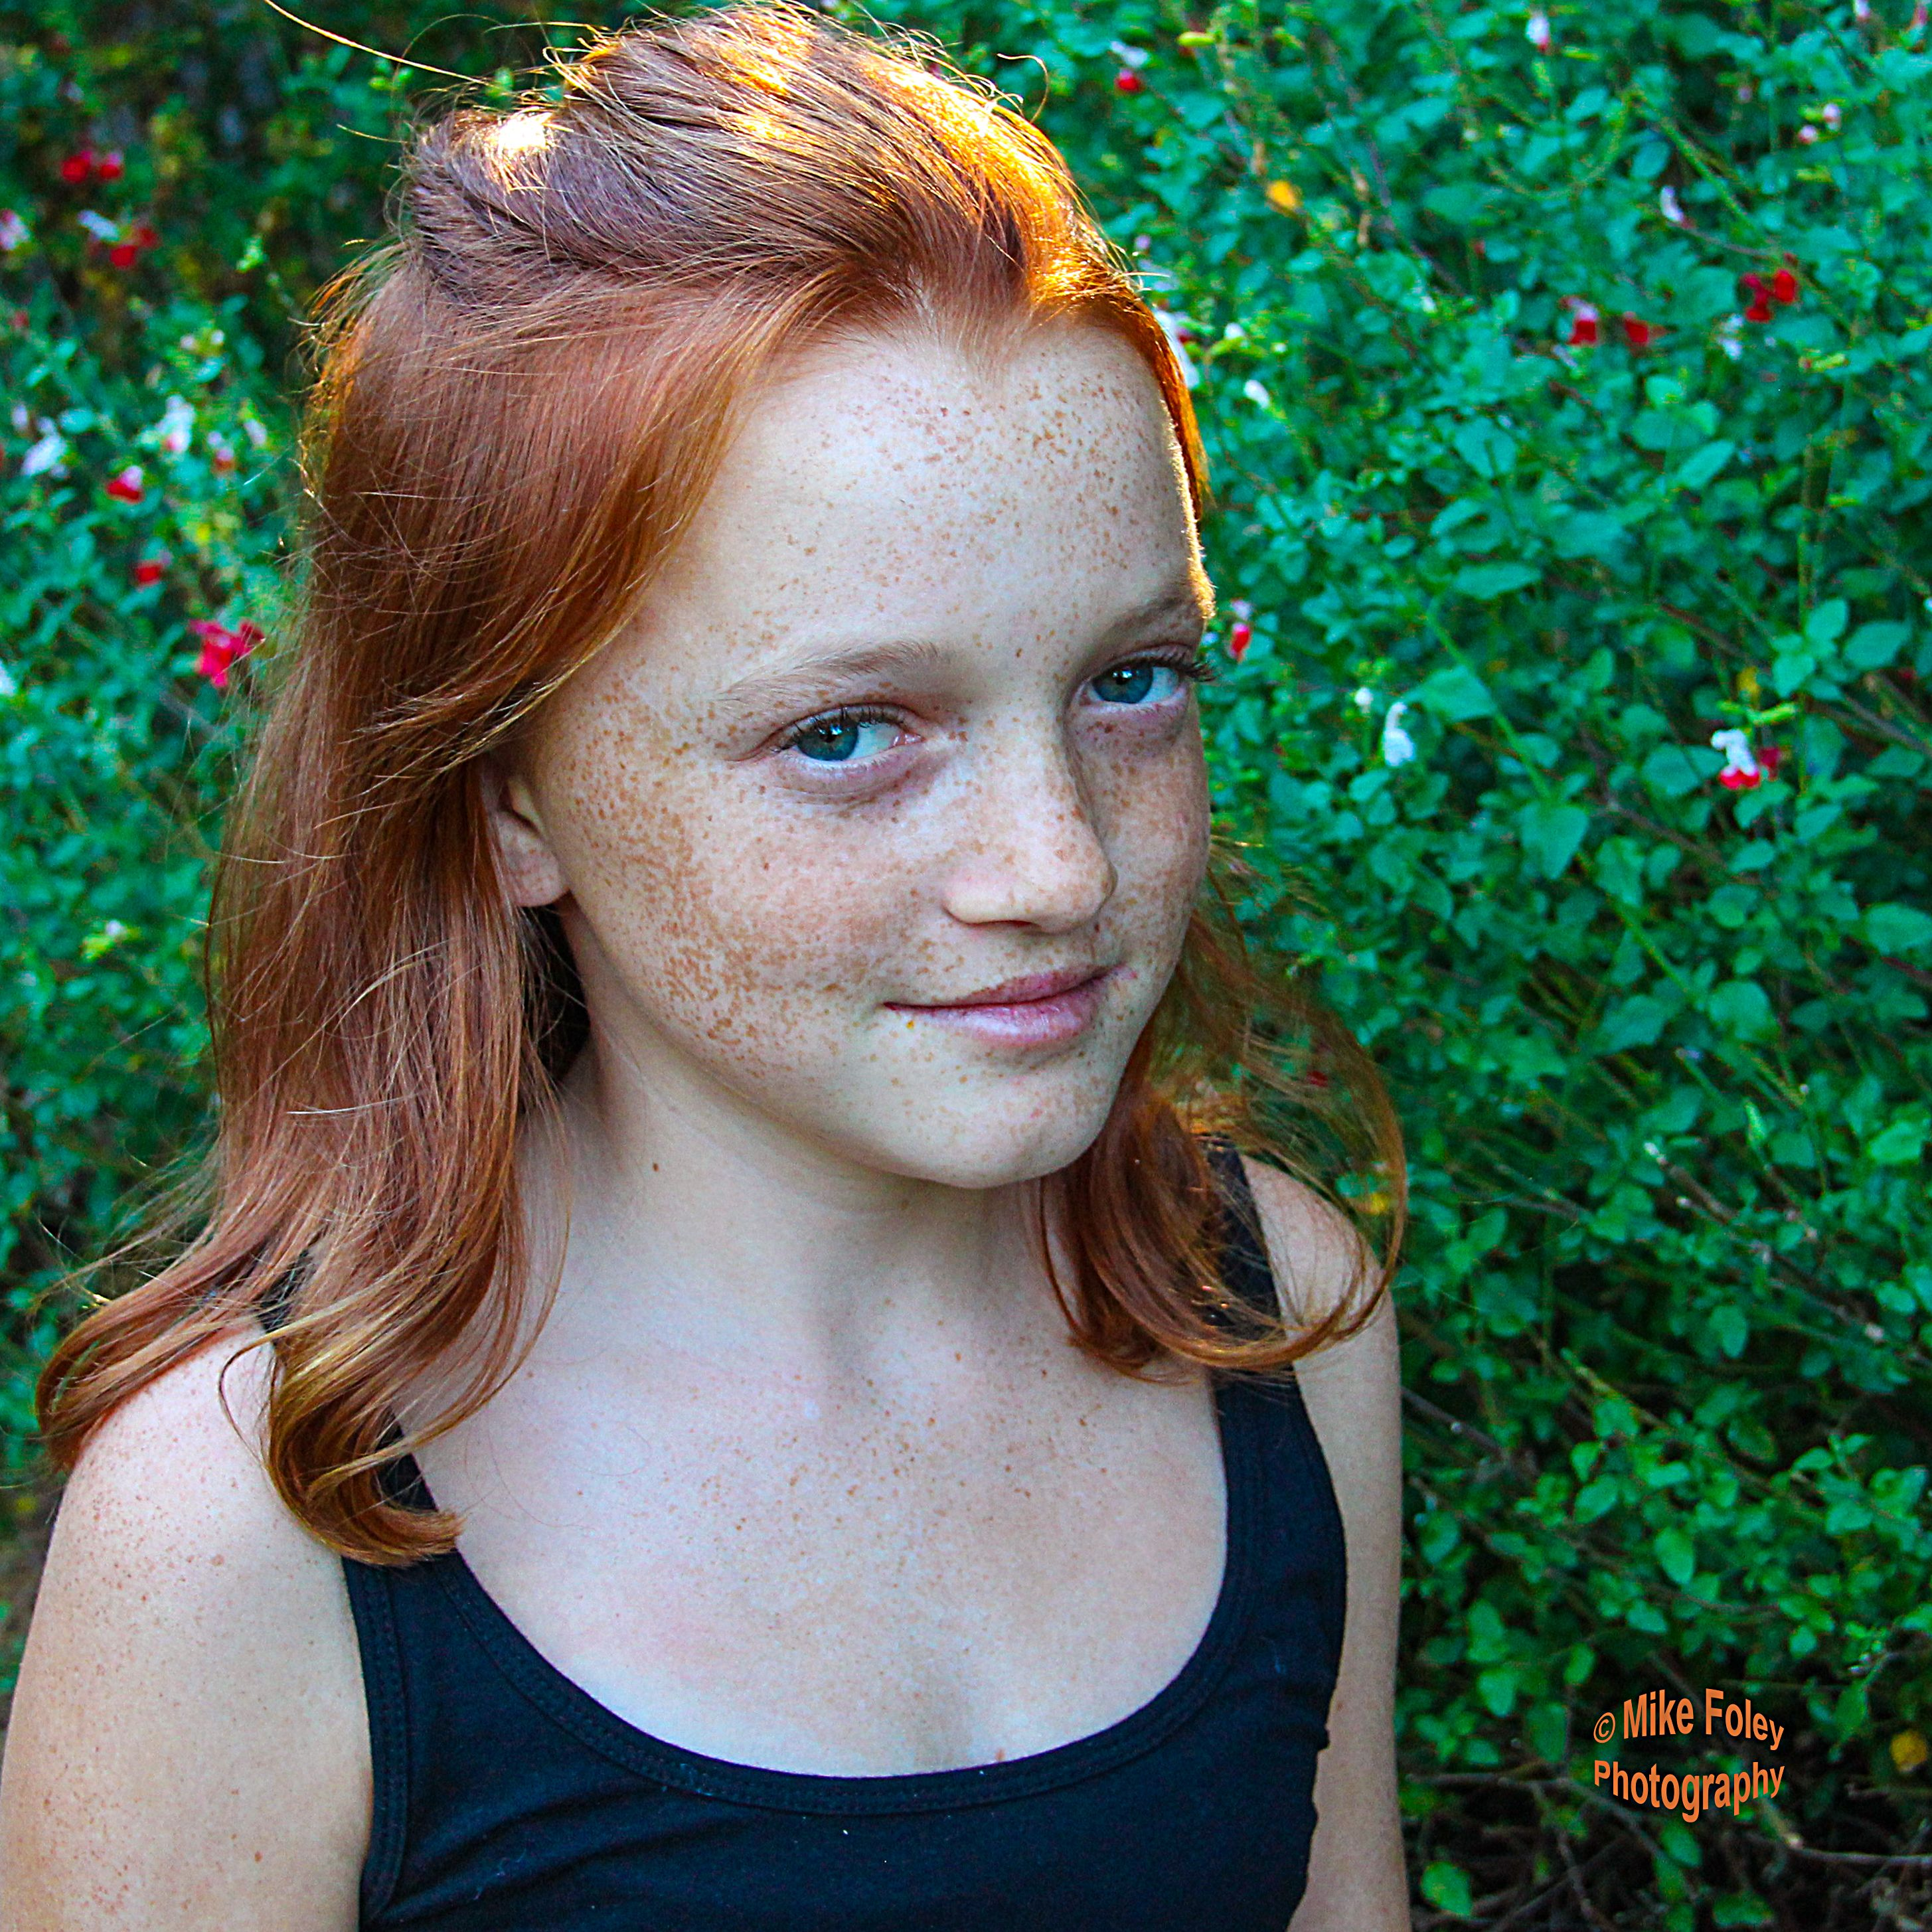 Ginger Girl Pre Teen Bright Redhead Freckles On Alabaster Skin 12 Twelve Year Old Model With Blue Eyes Mike Foley Photography